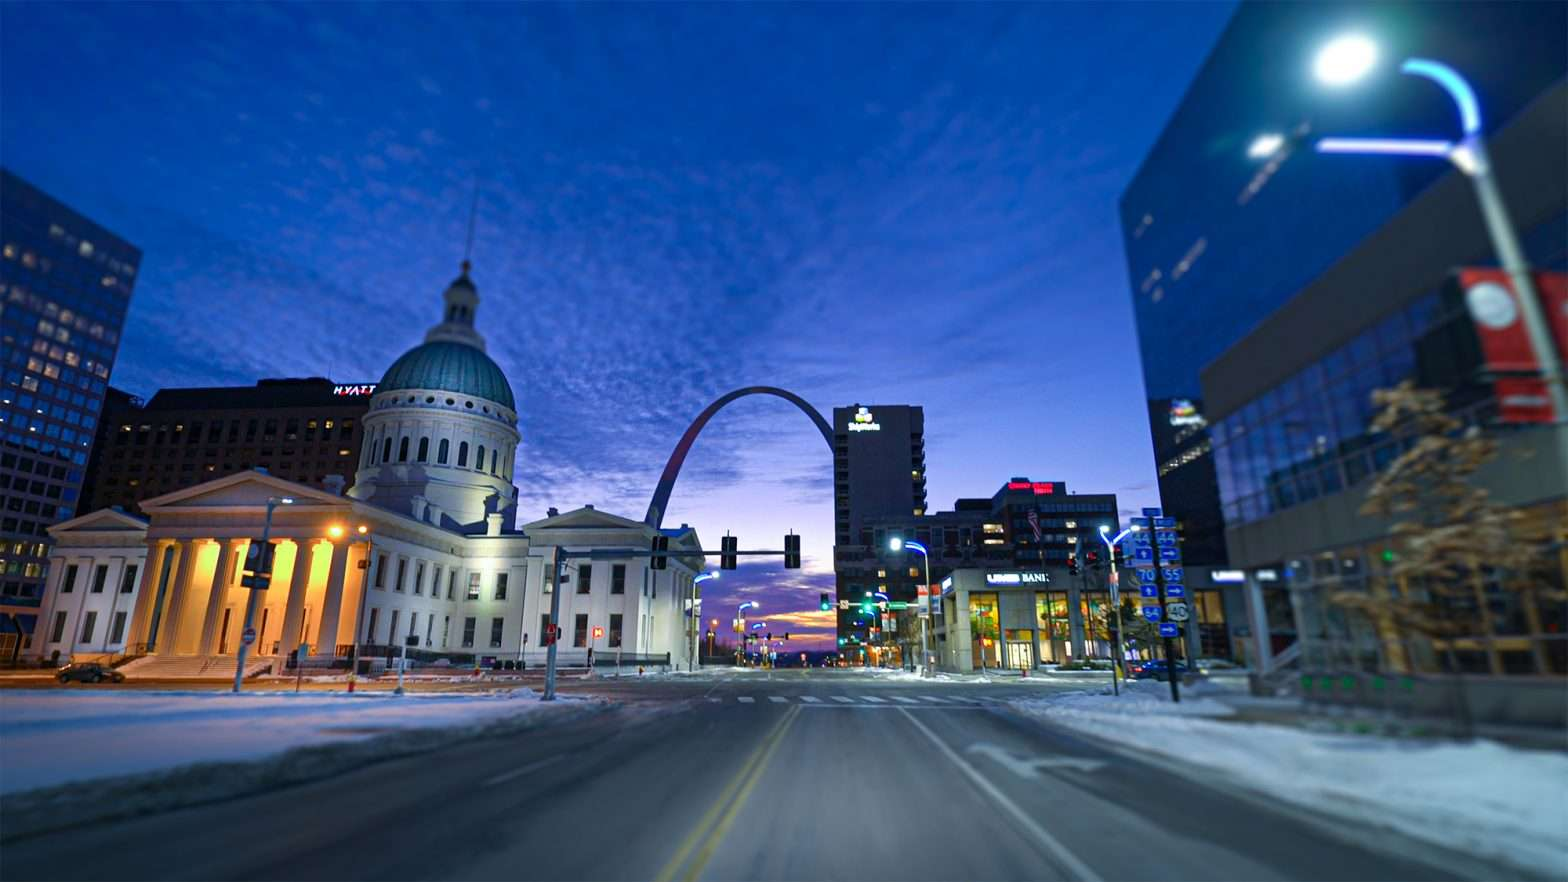 Old Courthouse and Gateway Arch at night in downtown St. Louis in Feb. of 2021. credit craig currie